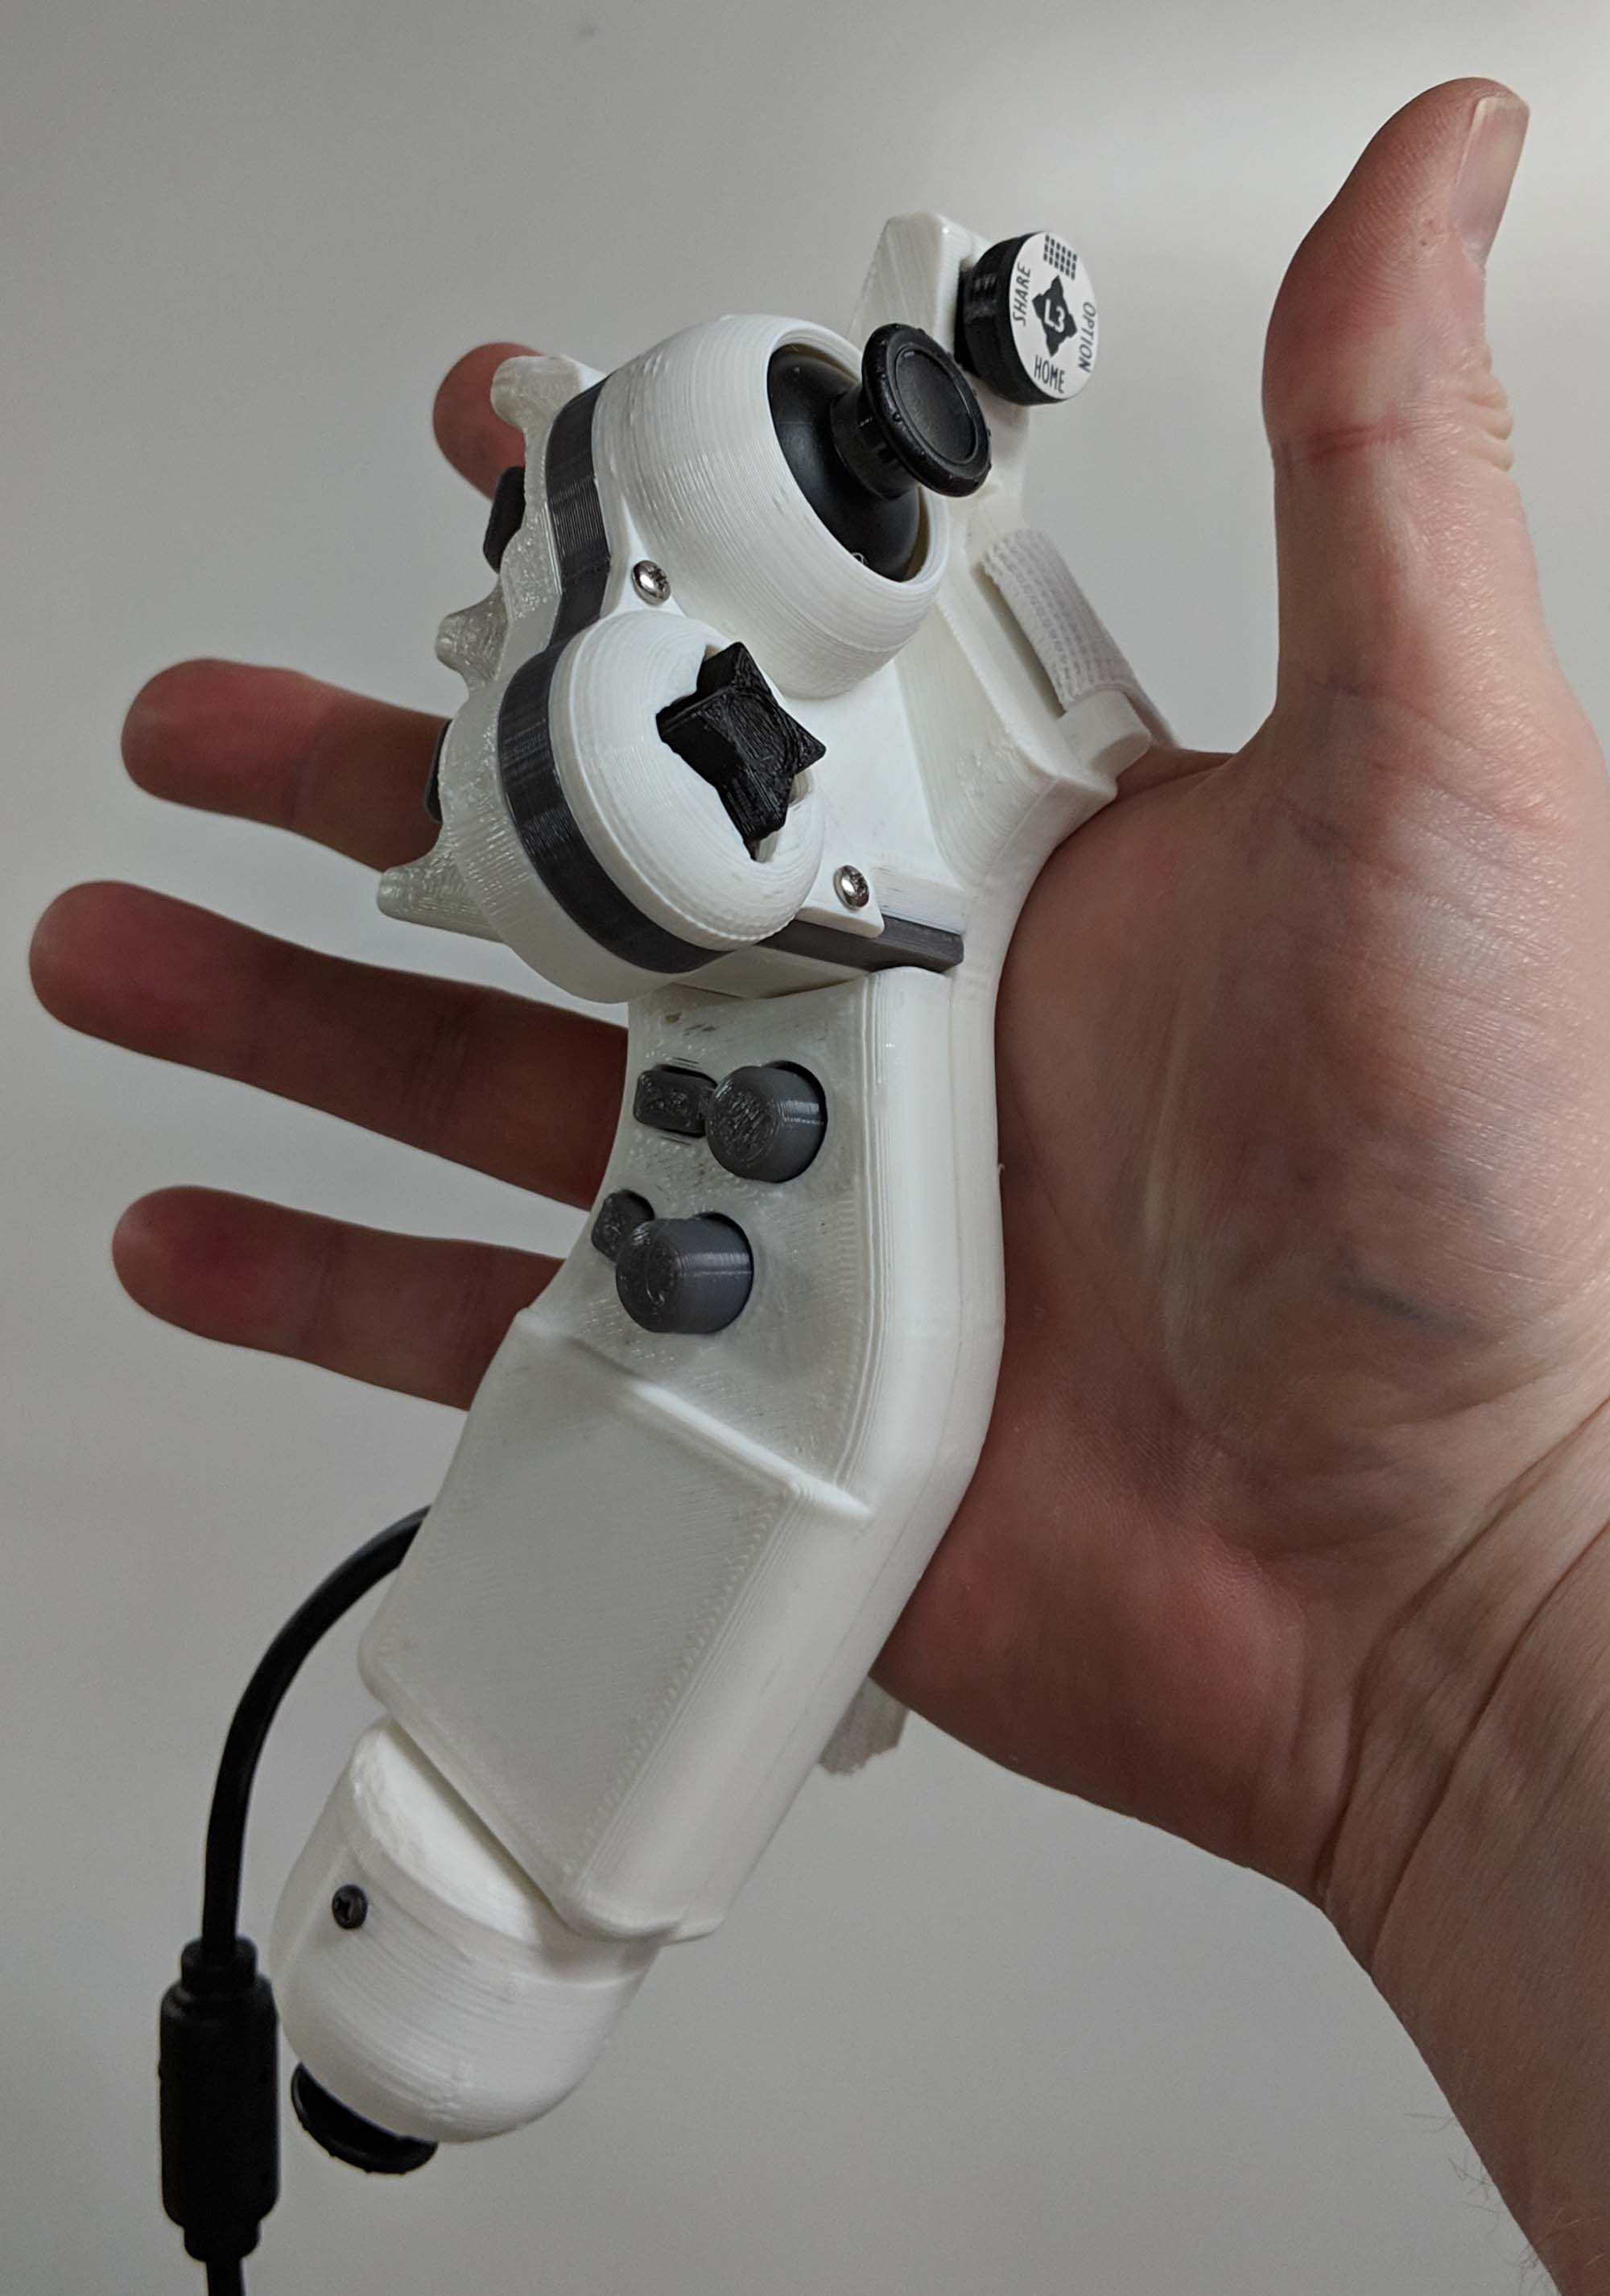 Just a quick note I finally found the time to finish the prototype! It's  based off the Hori PS4 Mini controller. Pictures and info below.